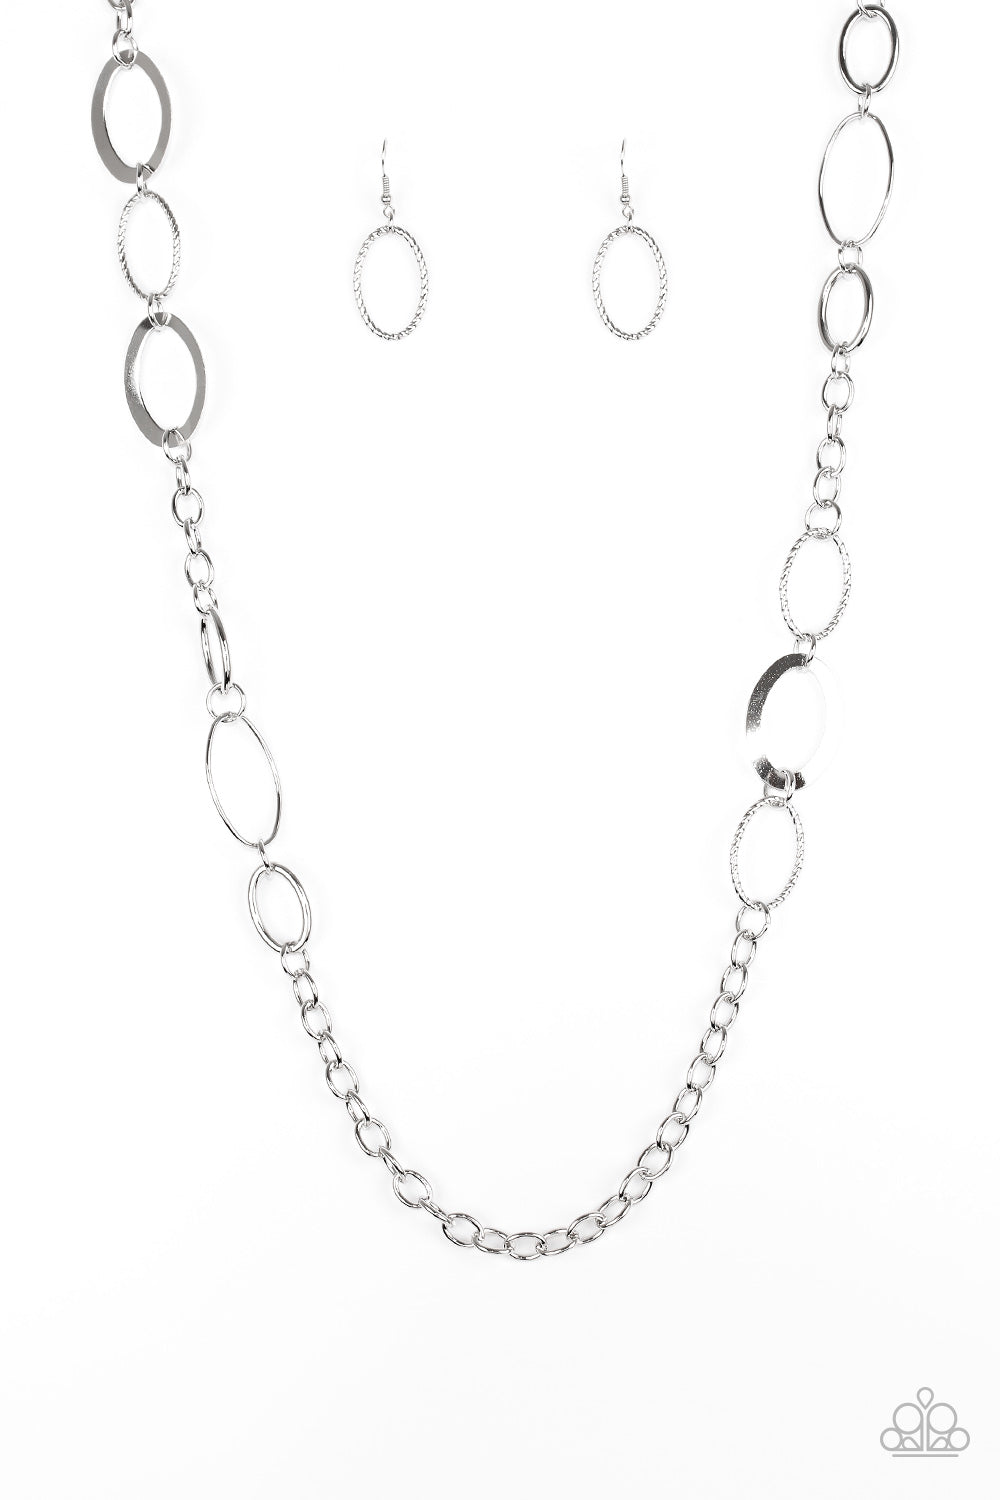 Paparazzi Accessories - Chain Cadence - Silver Necklace Set - JMJ Jewelry Collection